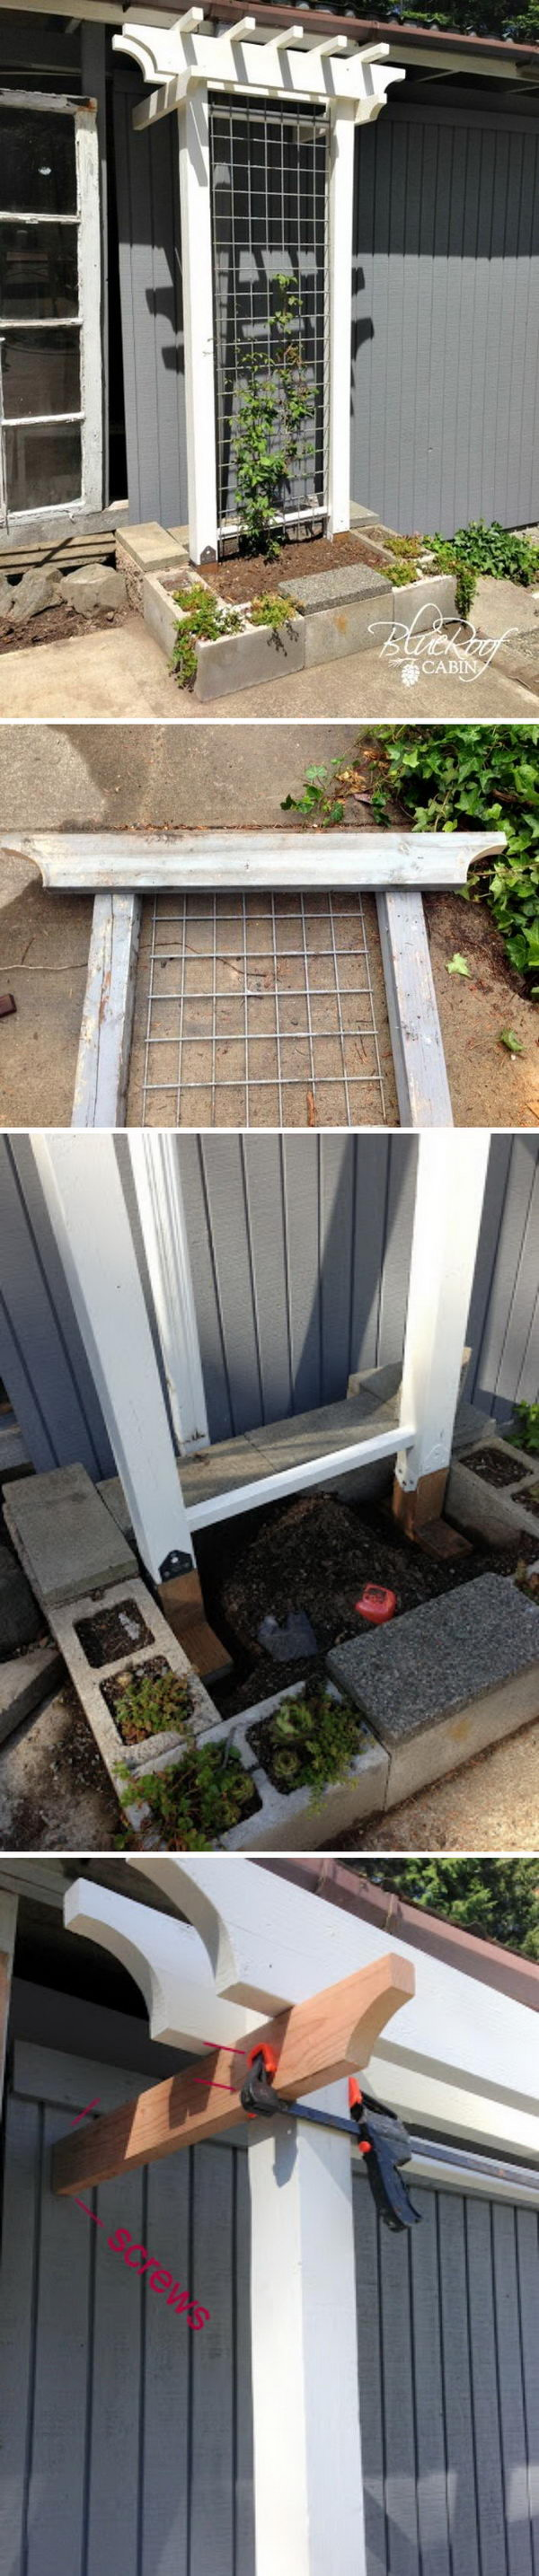 Awesome DIY Garden Trellis.